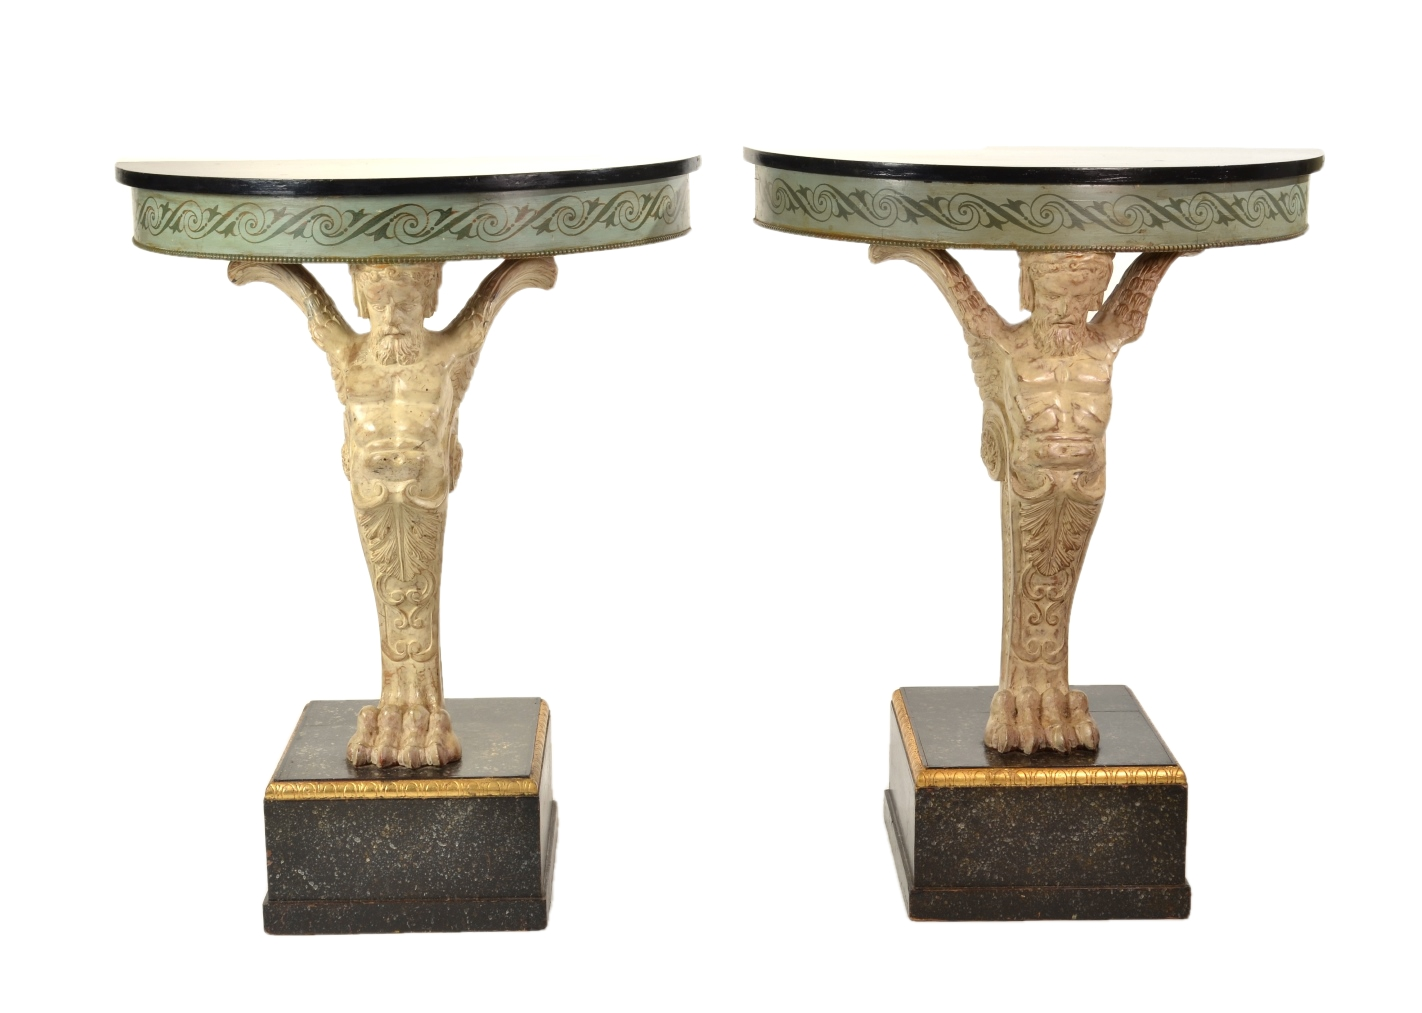 Pair of Carved and Painted Demilune Console Tables, 20th c.